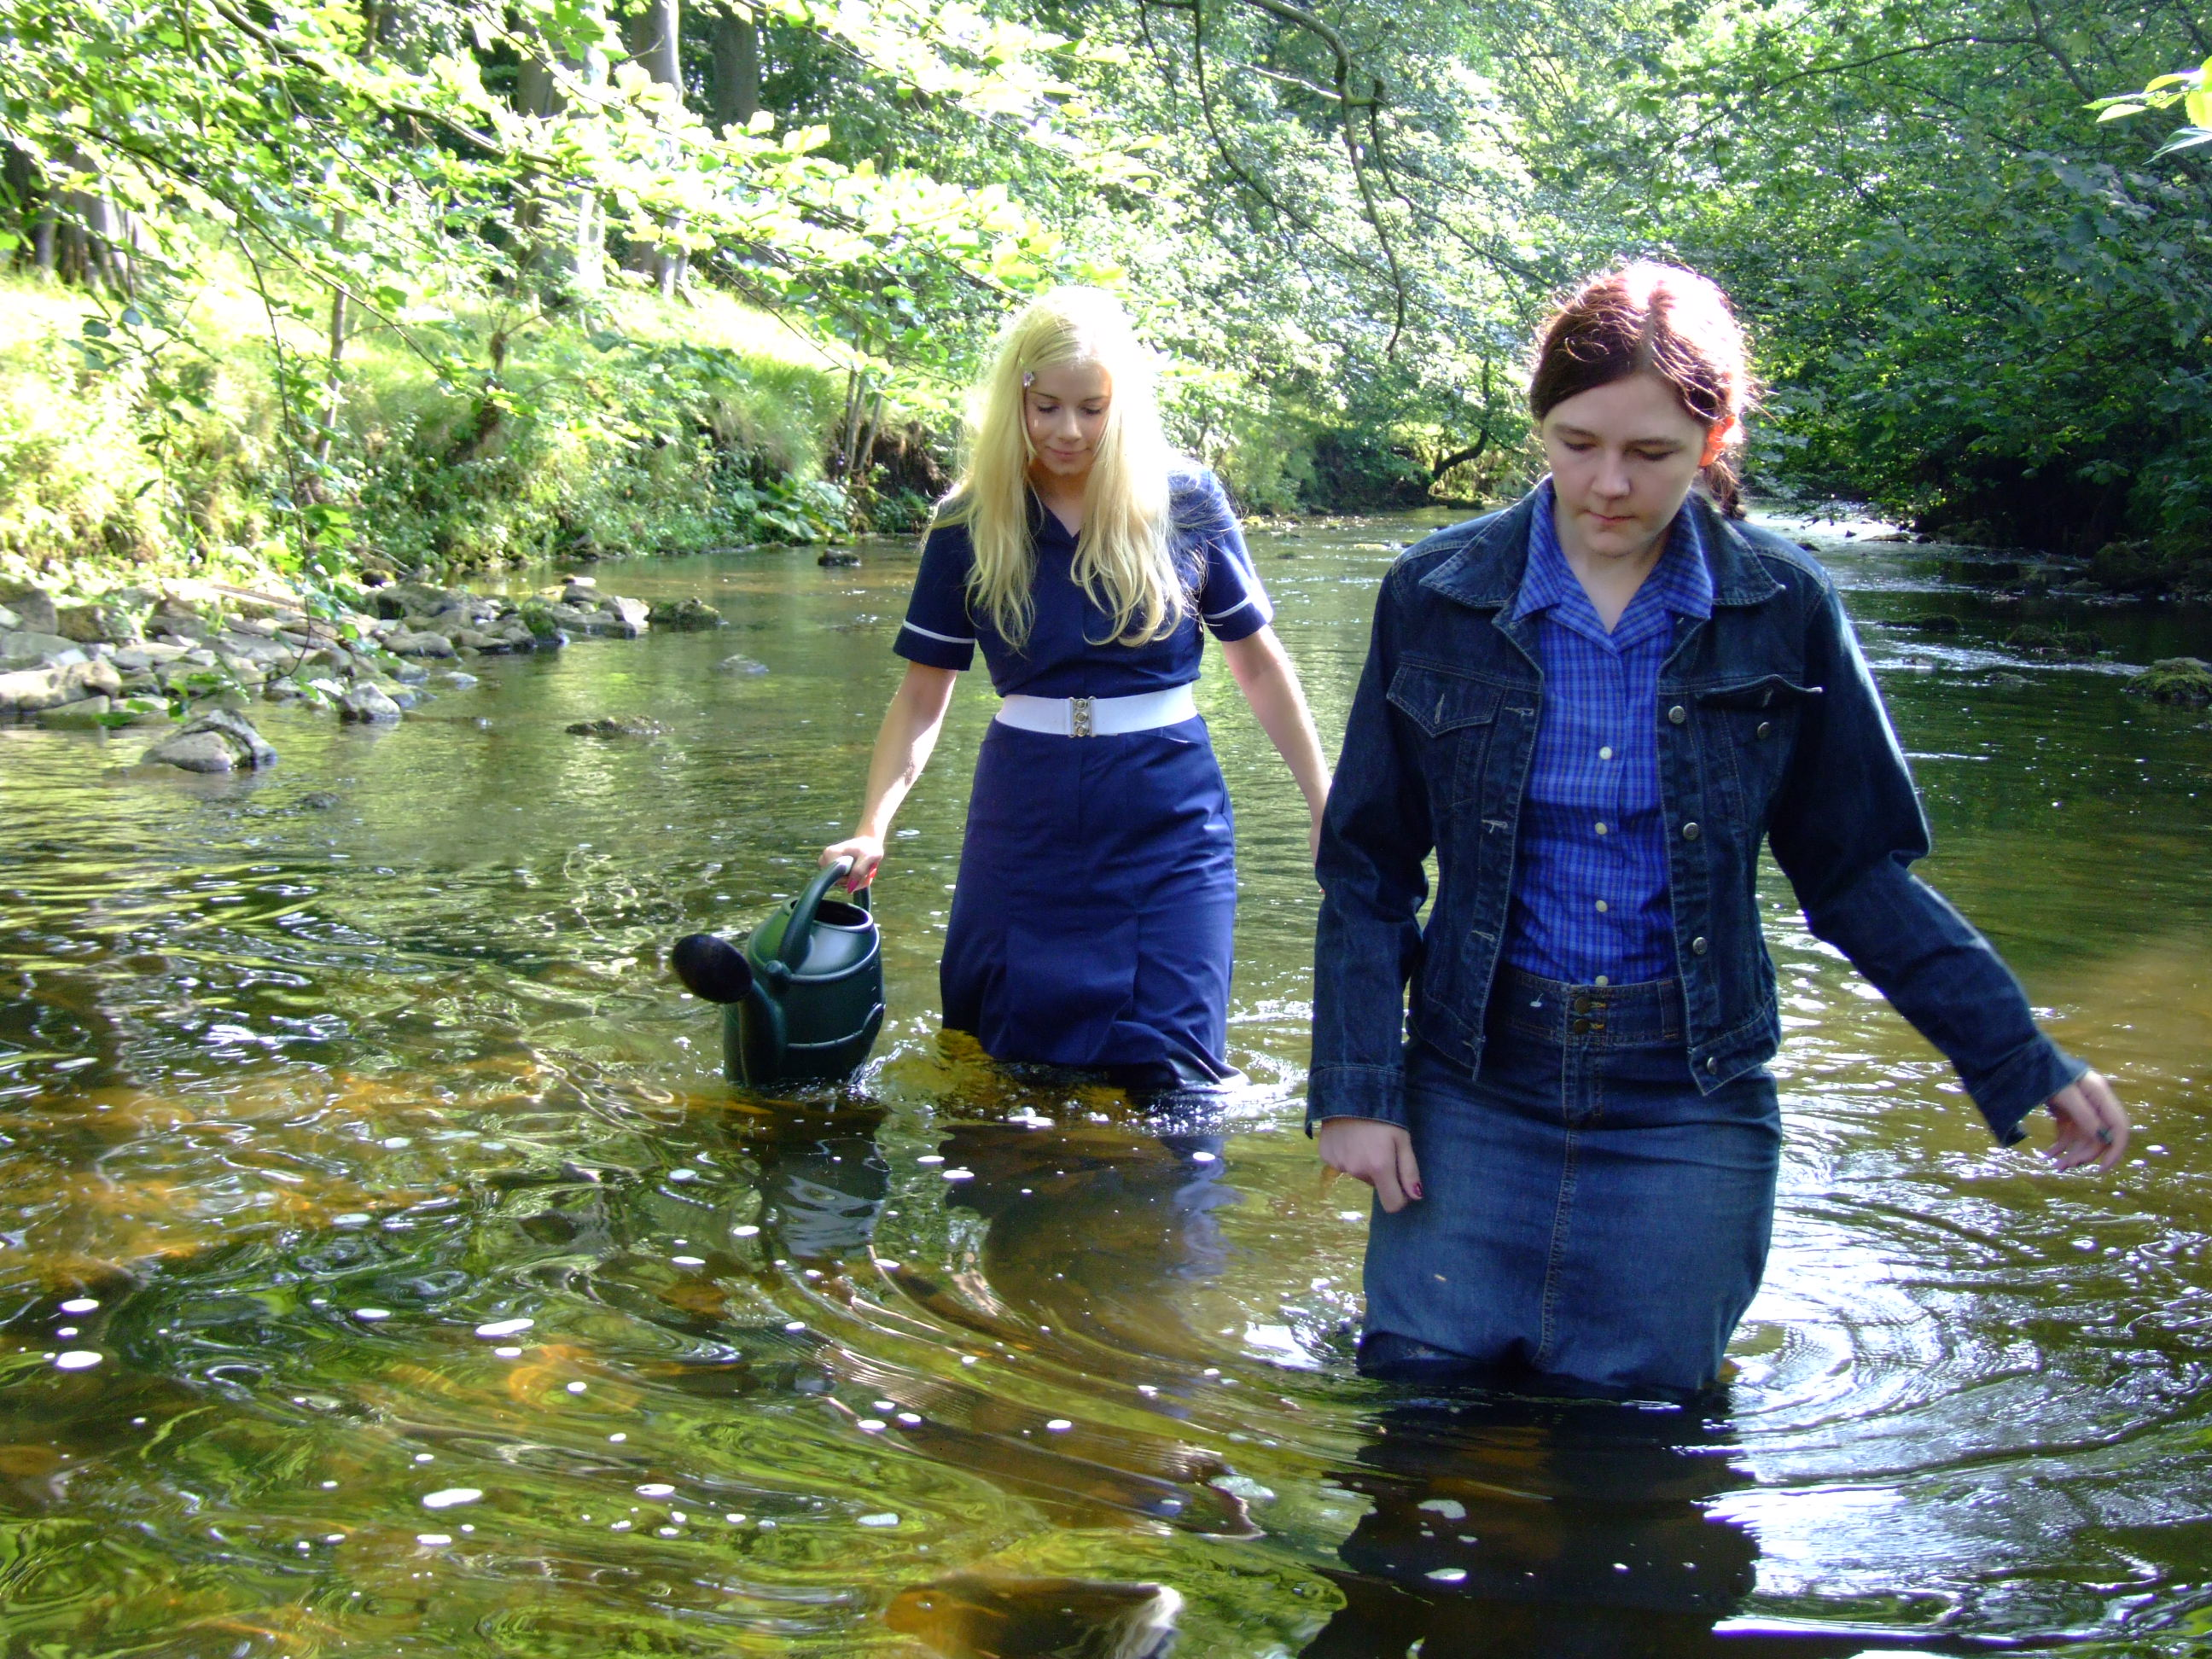 Modesty Wets Chastity Two Wet Wenches In The River